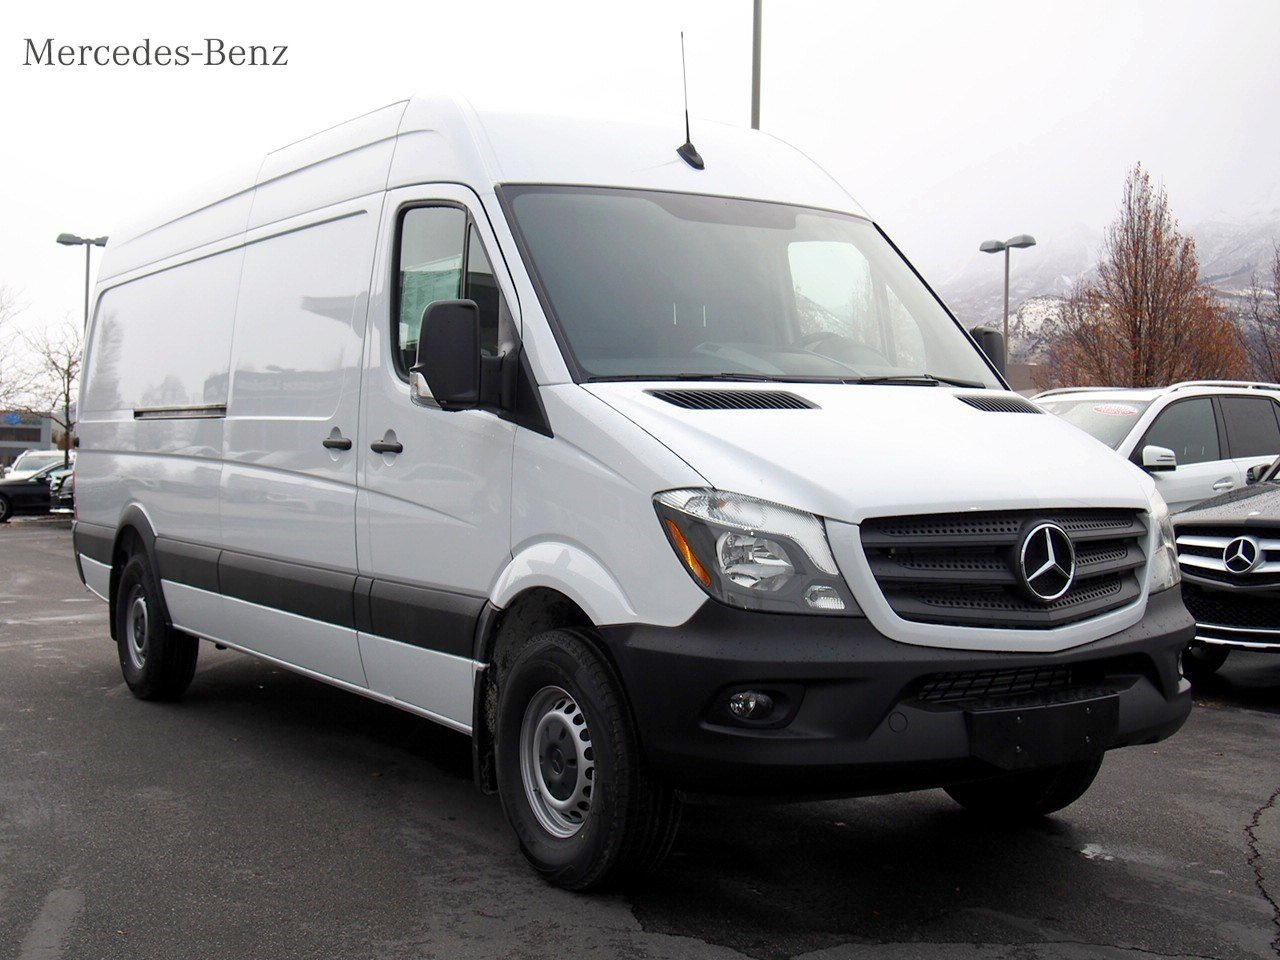 New 2017 mercedes benz sprinter cargo vans cargo van in for Mercedes benz work vans